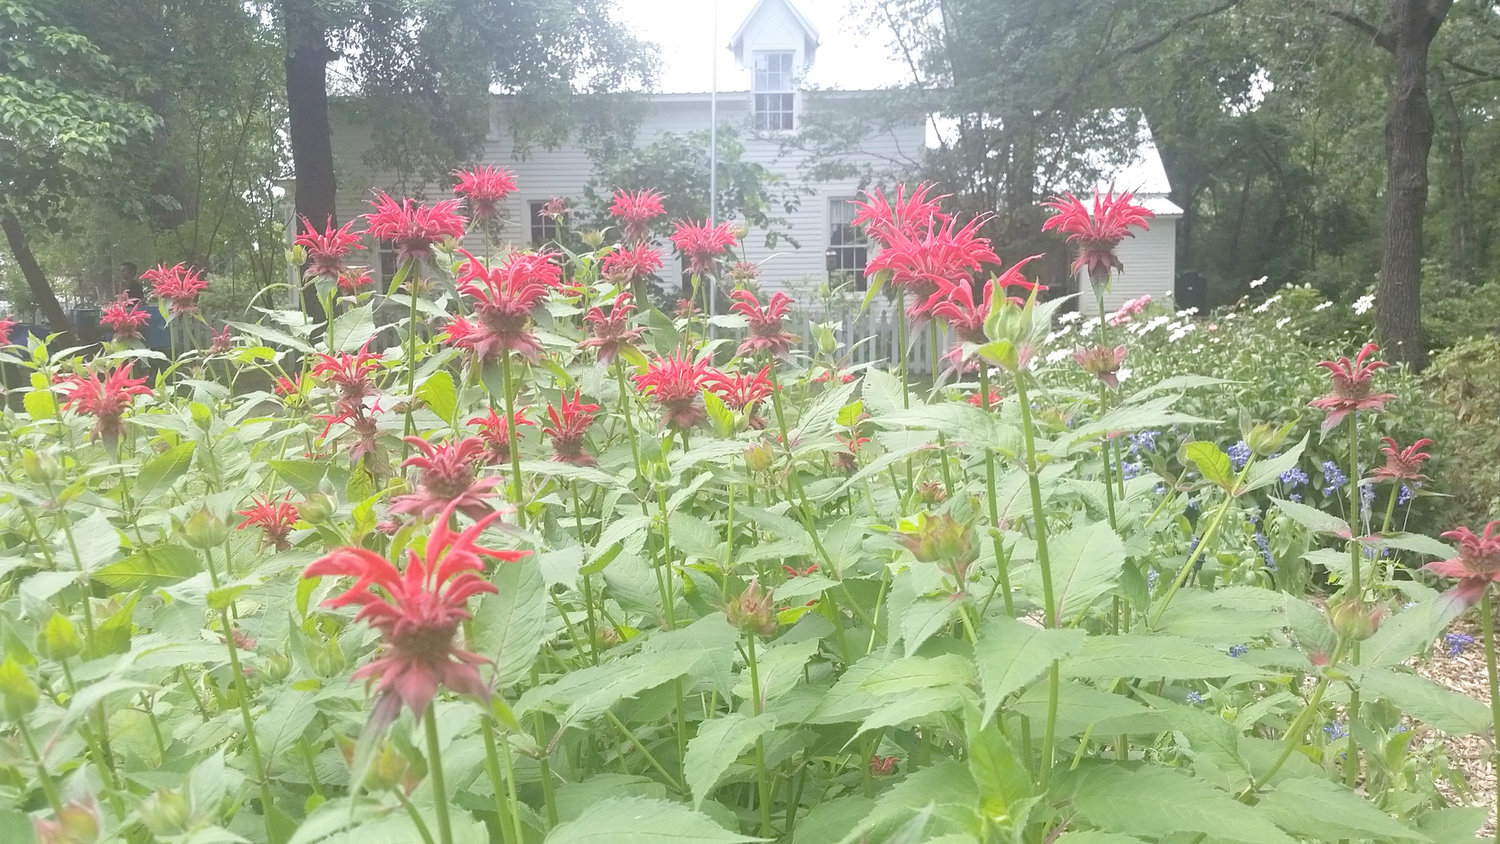 Bee Balm can spread beyond its boundaries in a garden.